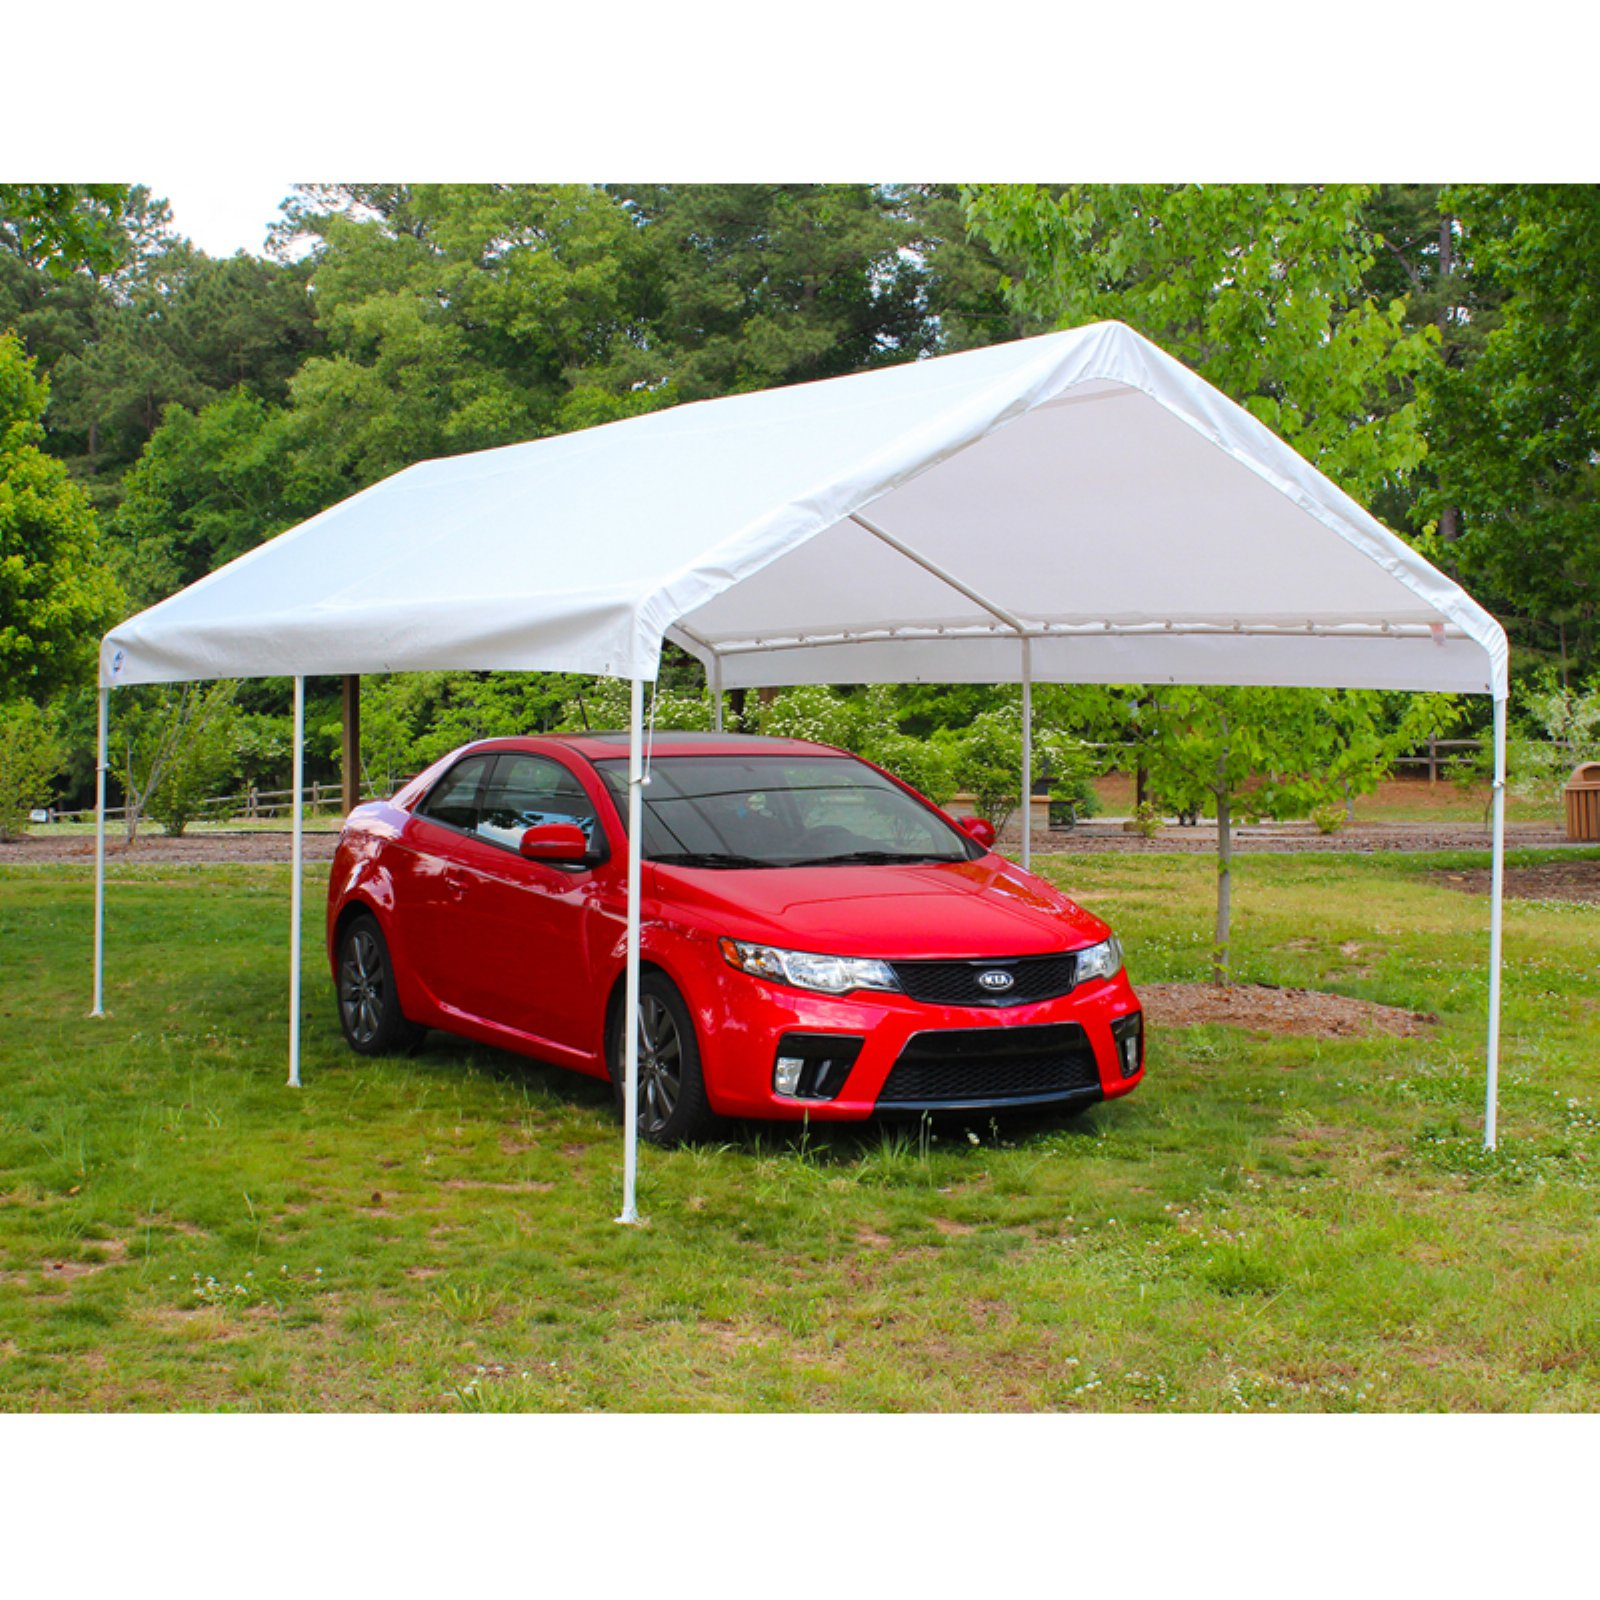 King Canopy 10 x 20 ft. Universal Canopy